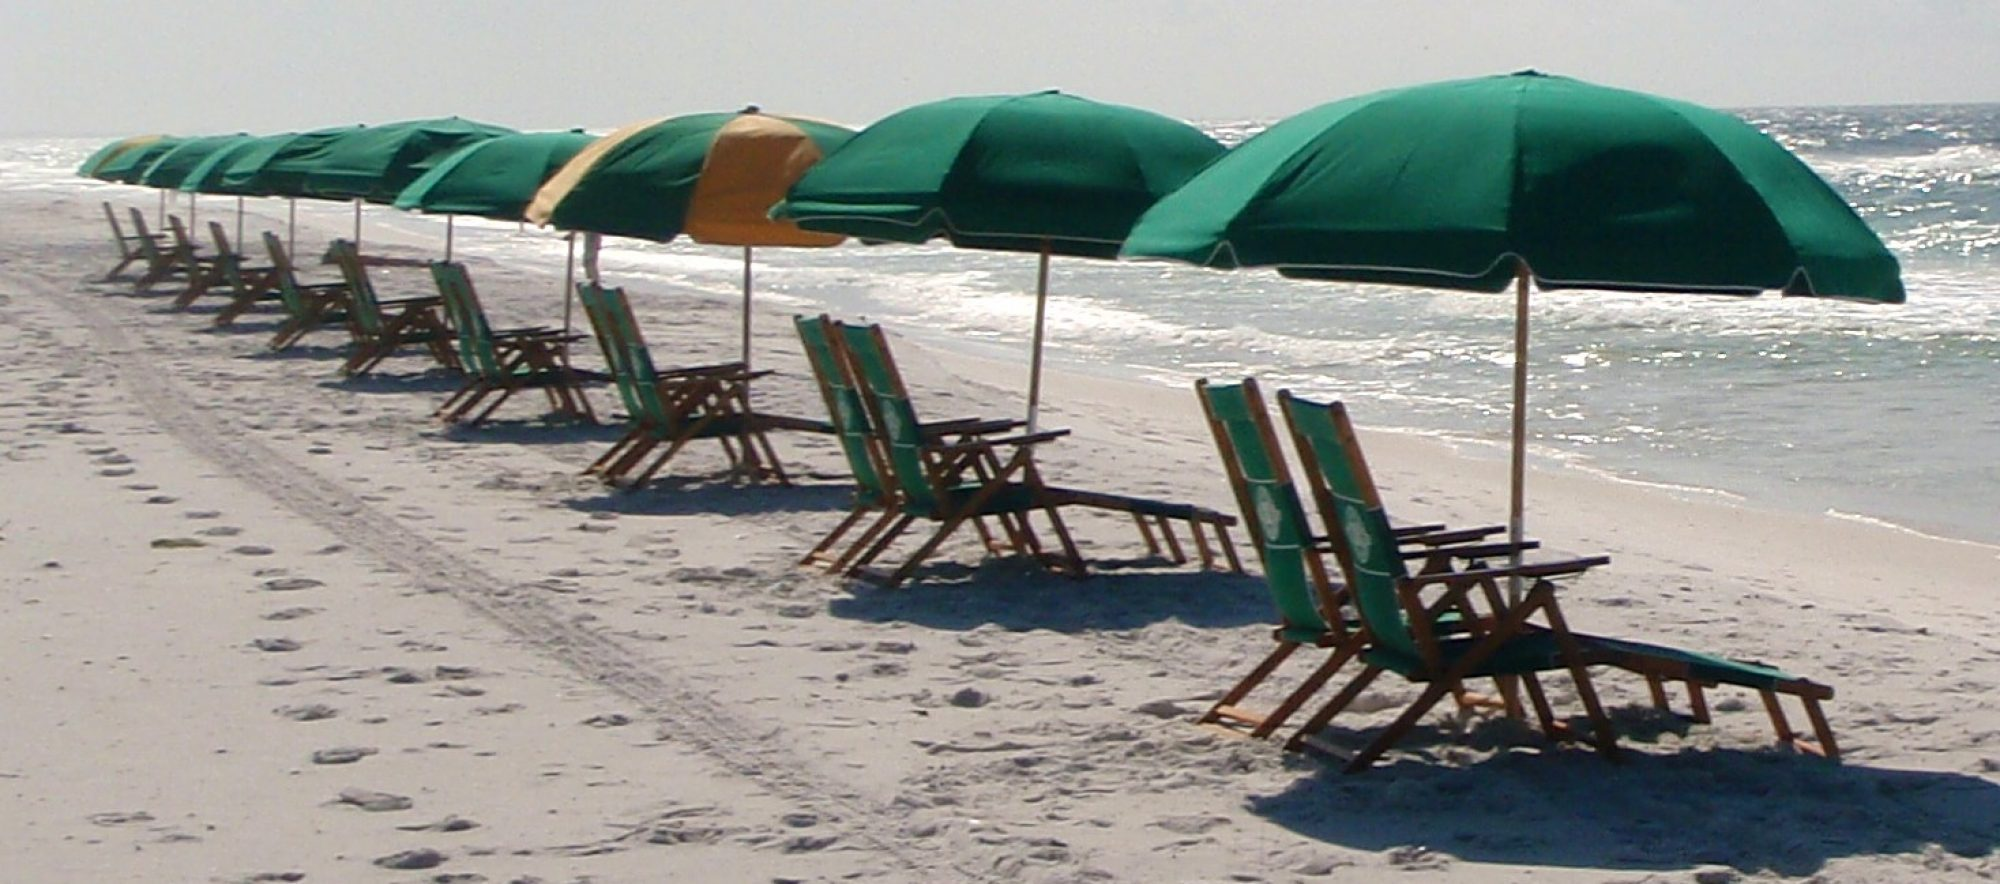 Beach chair and umbrella rentals